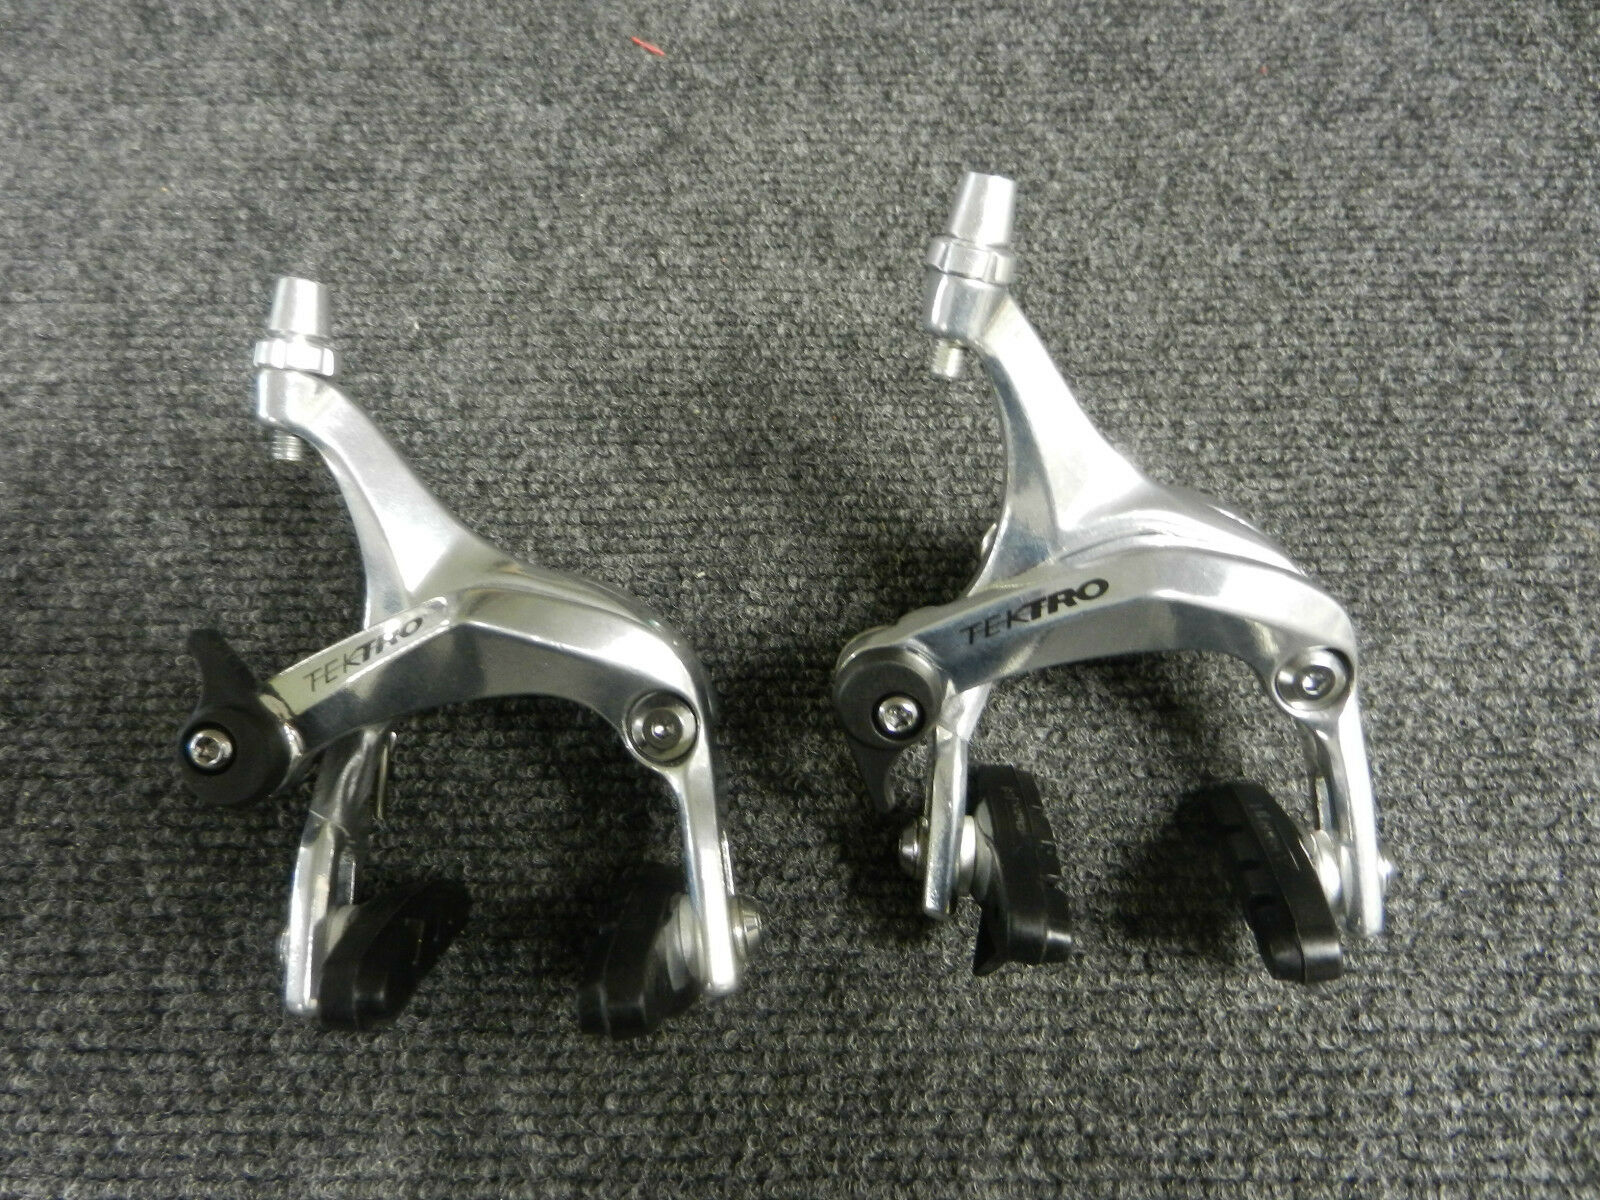 New tectro front and rear set alloy caliper road bicycle brakes